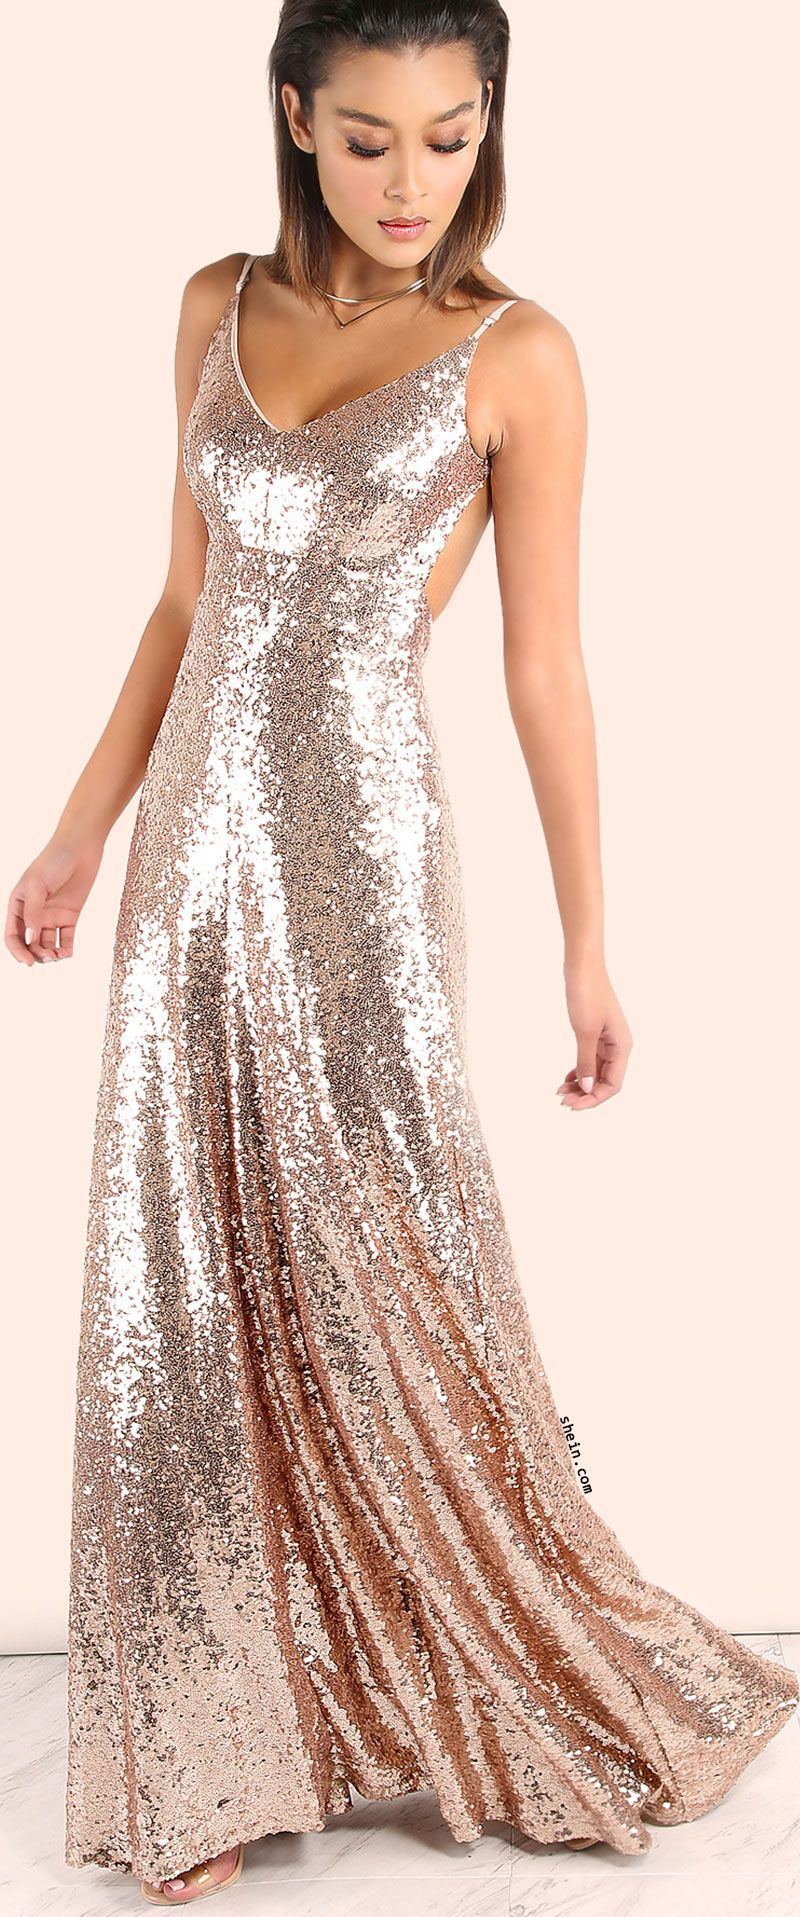 65569ae071d1 It's amazingly shiny, and gorgeous! Shimmer cocktail dress, silver, backless  spaghetti strap